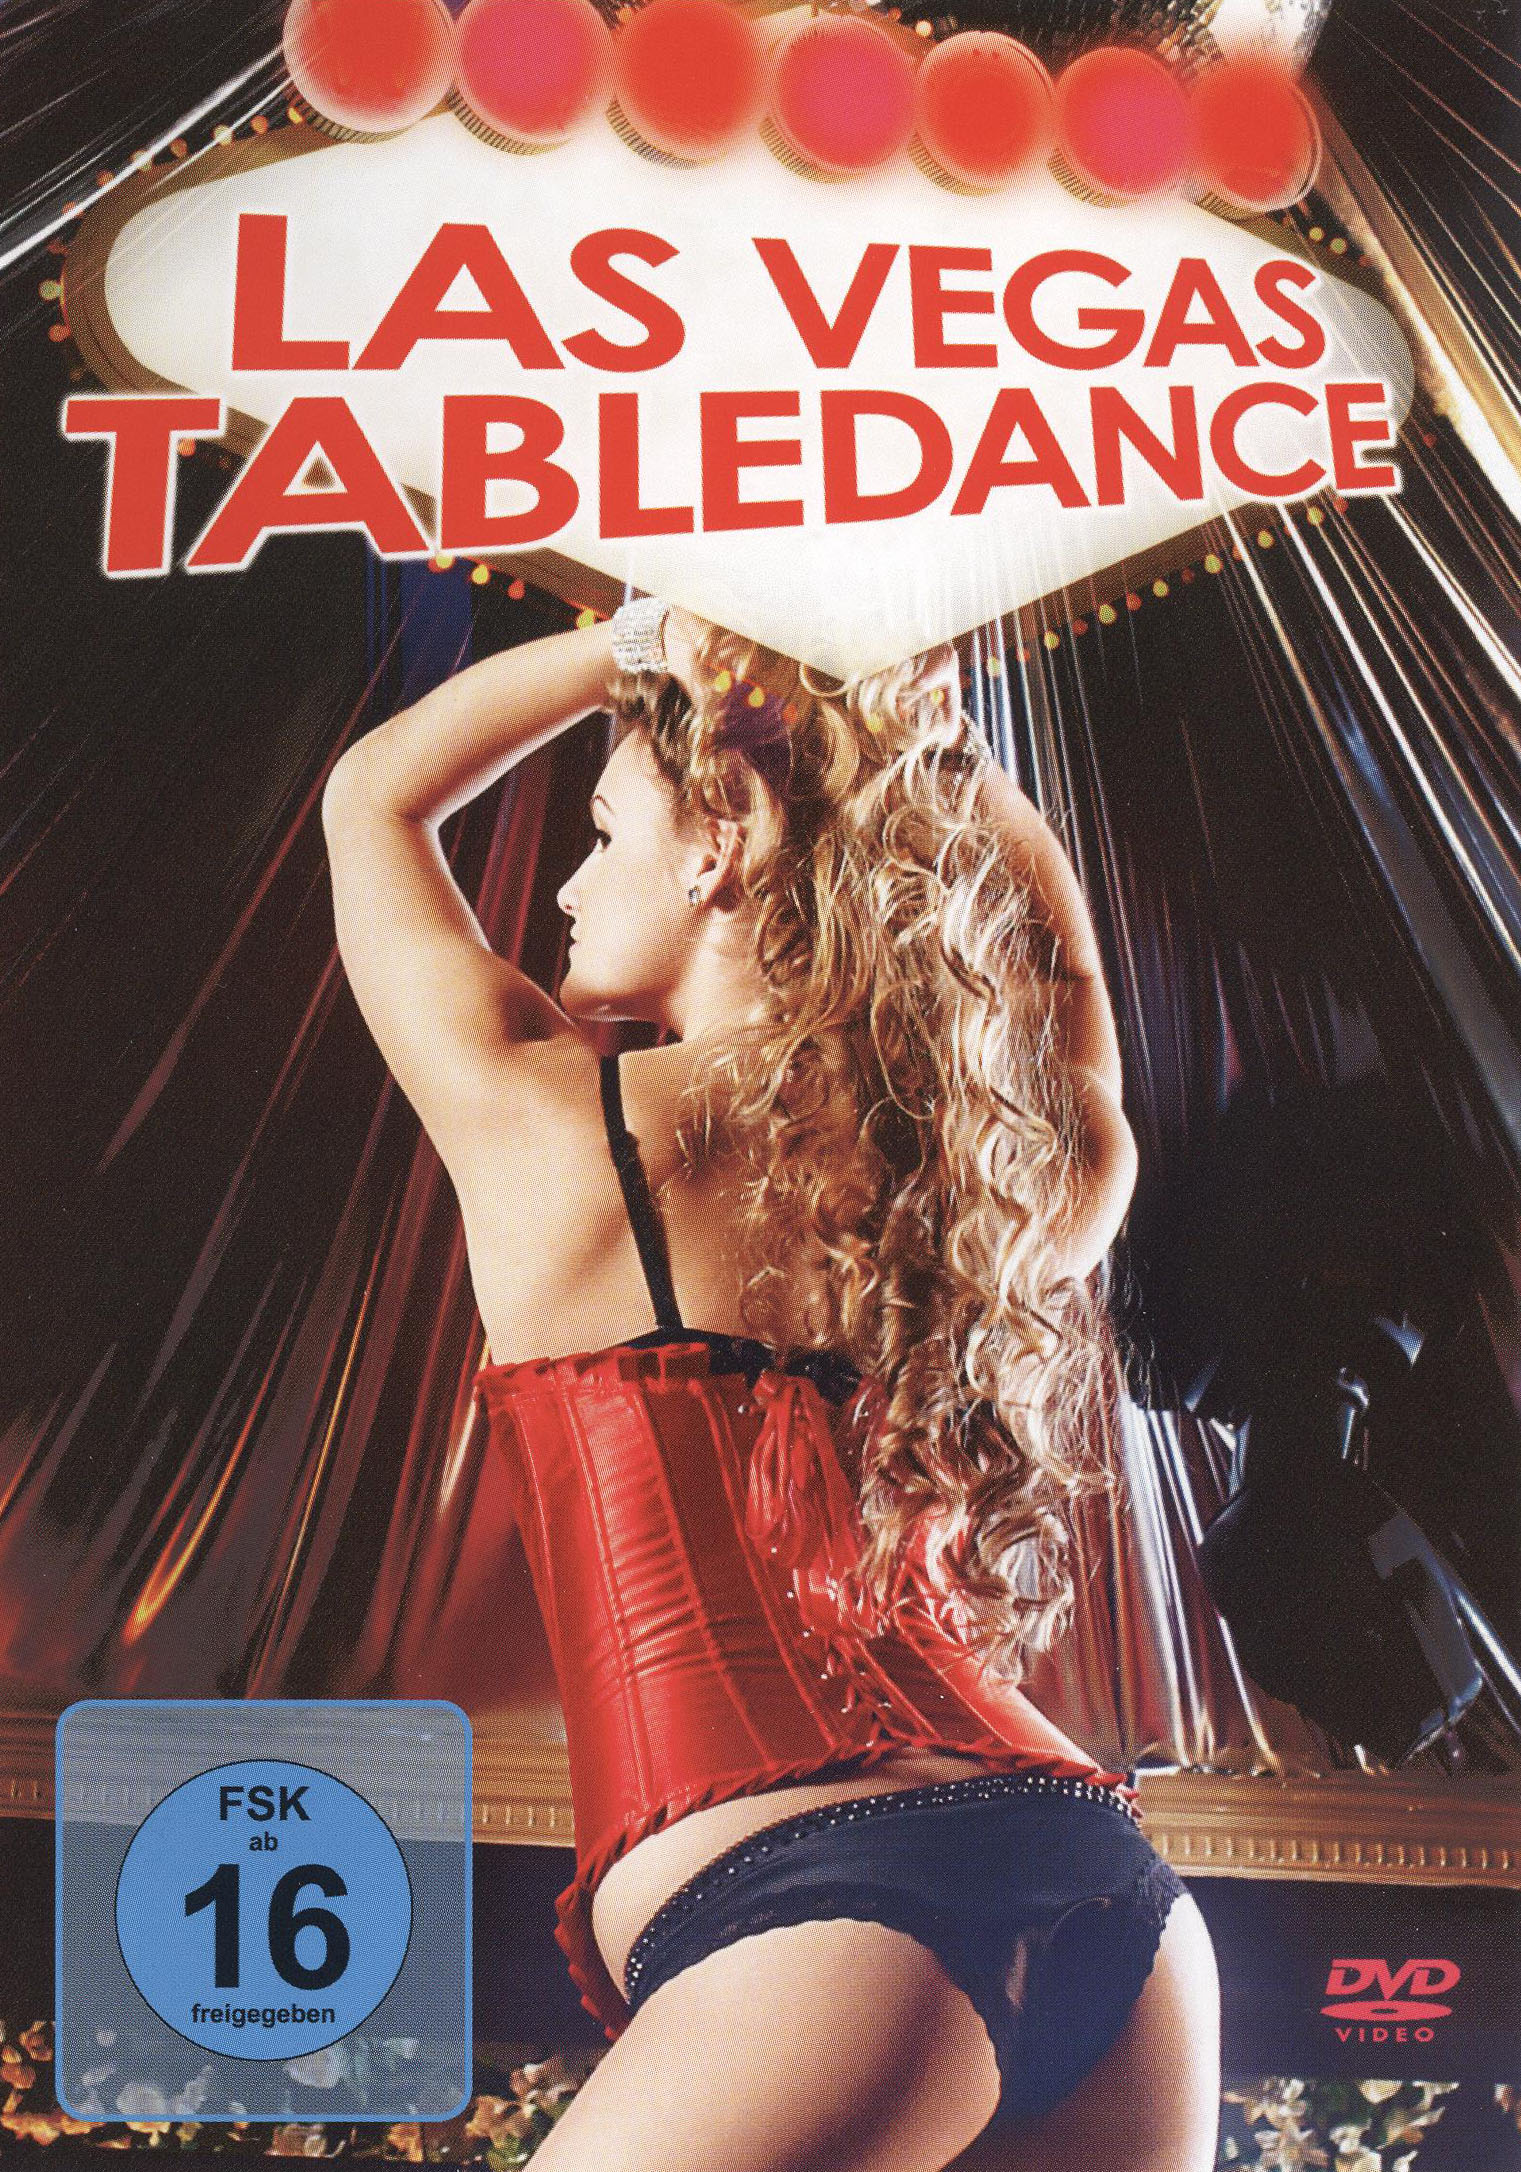 Las Vegas Tabledance